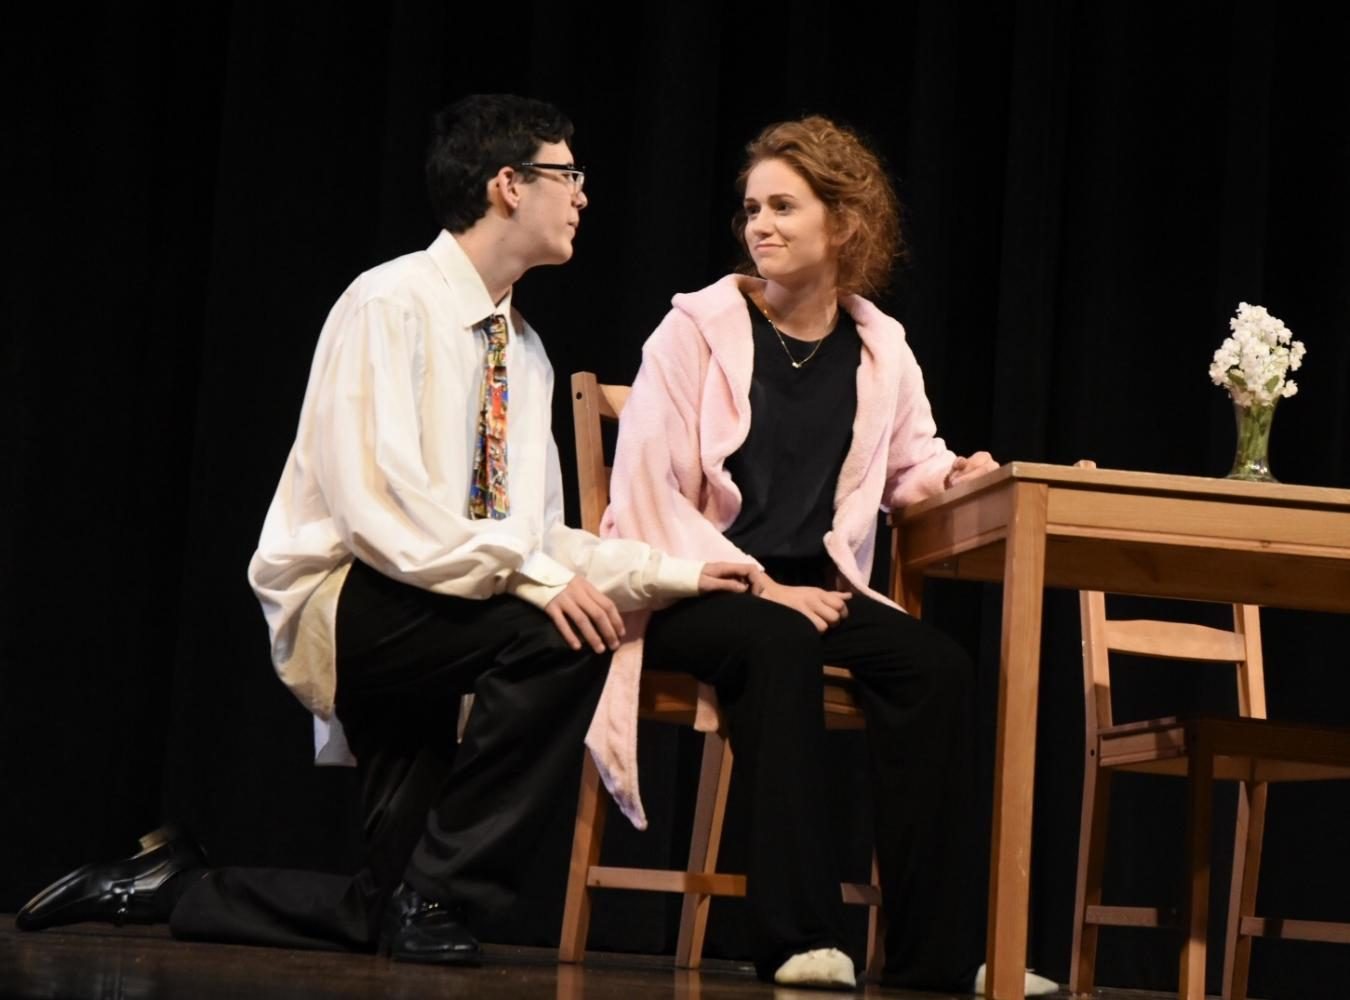 Sophomore Ryan Castiglia and junior Megan Kordik on stage during the 24 hour play festival last year.